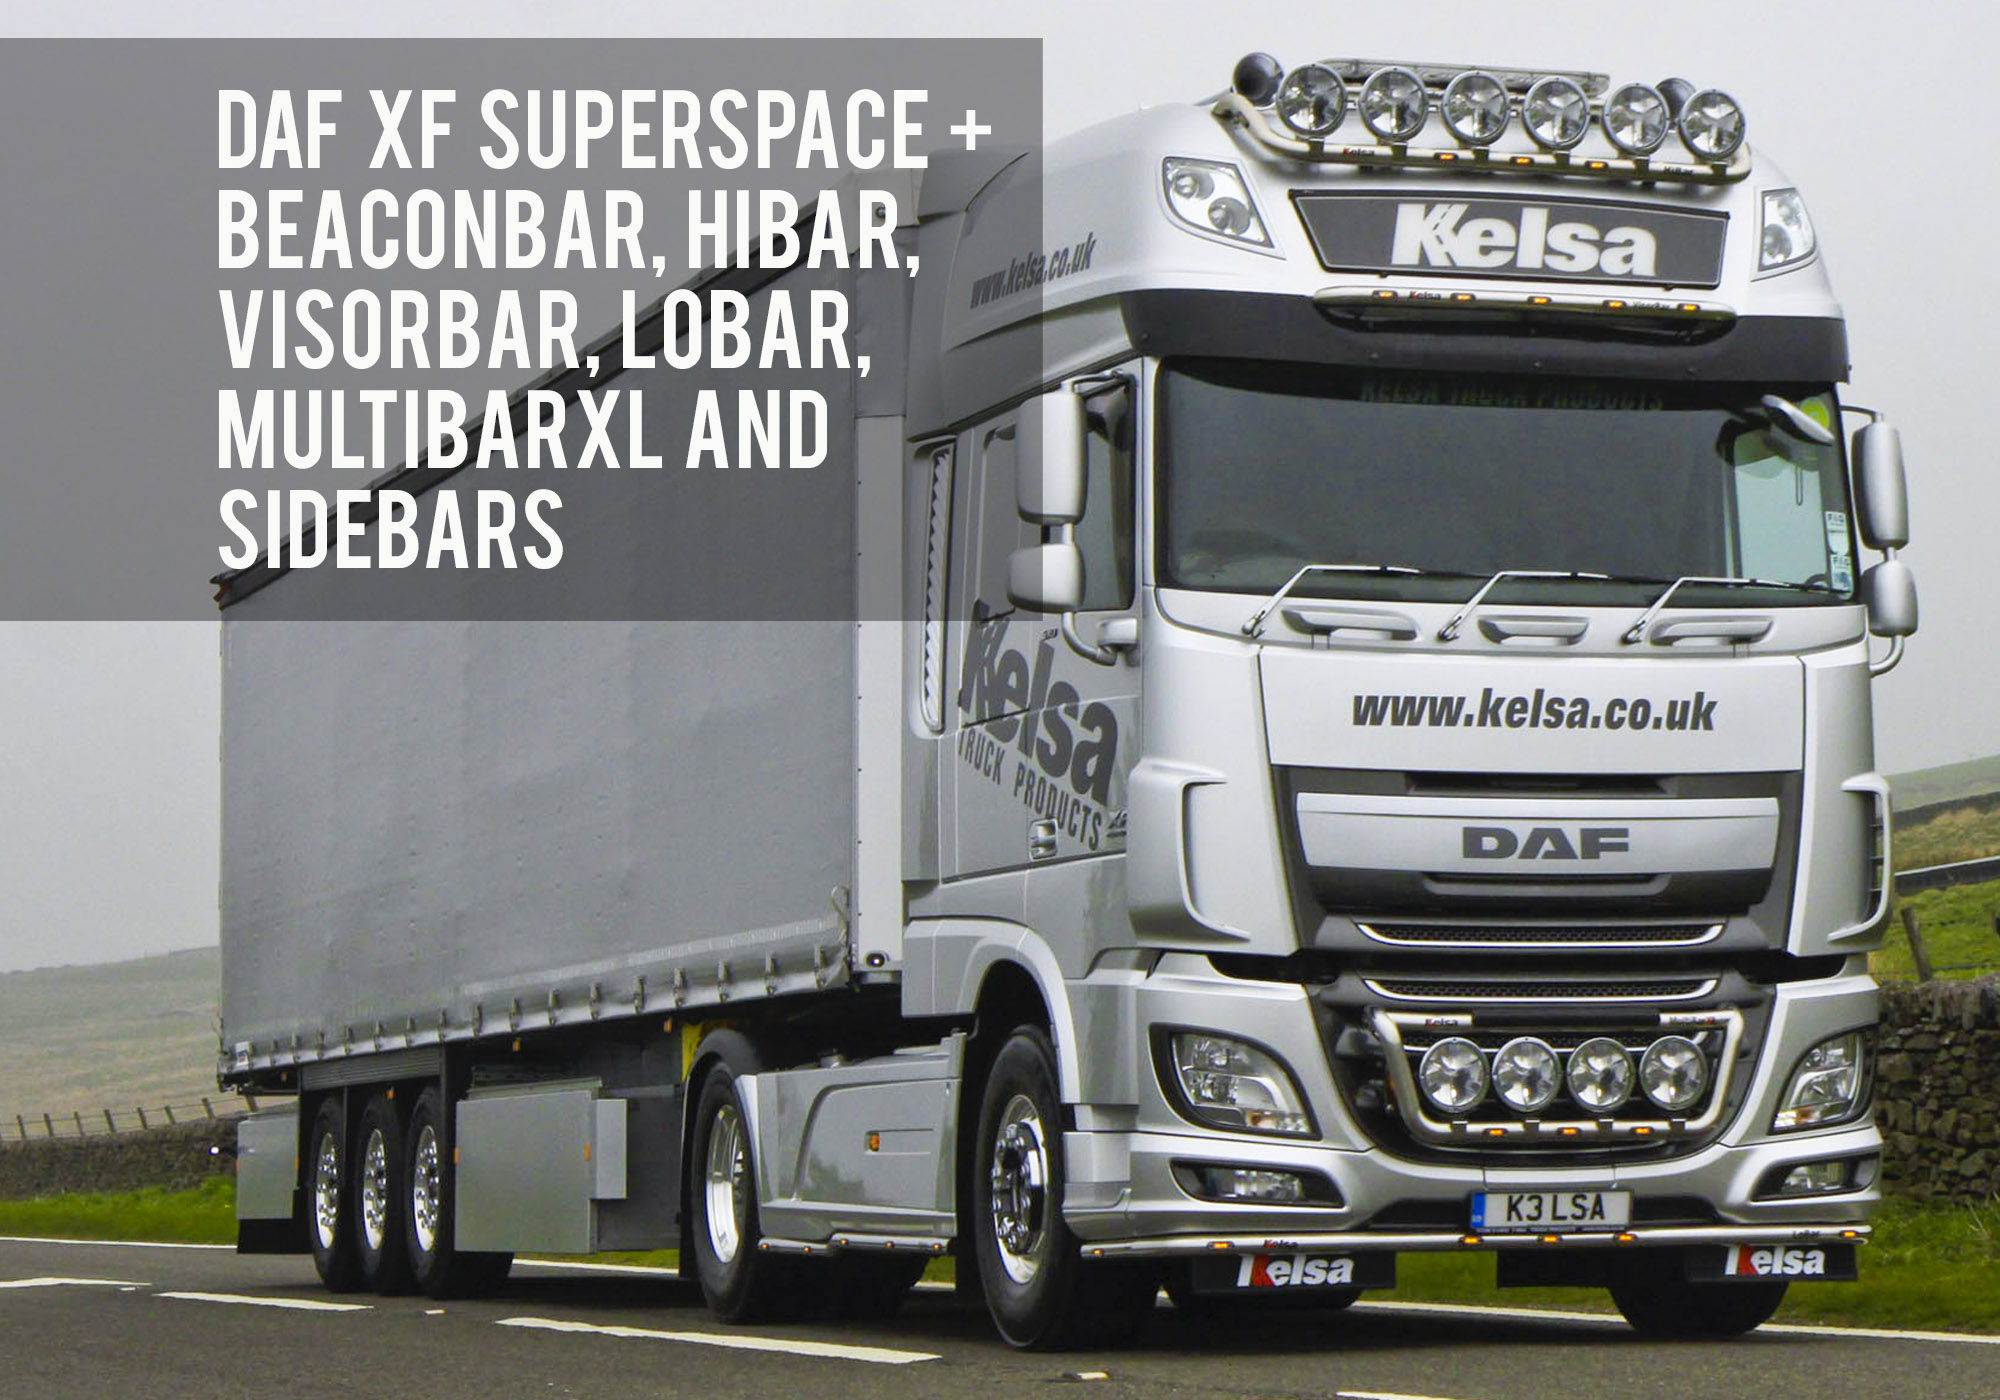 Kelsa High Quality Light Bars Accessories For The Trucking Lightning Amp Wiring Diagram Welcome To Truck Products In Peak District Of Derbyshire England